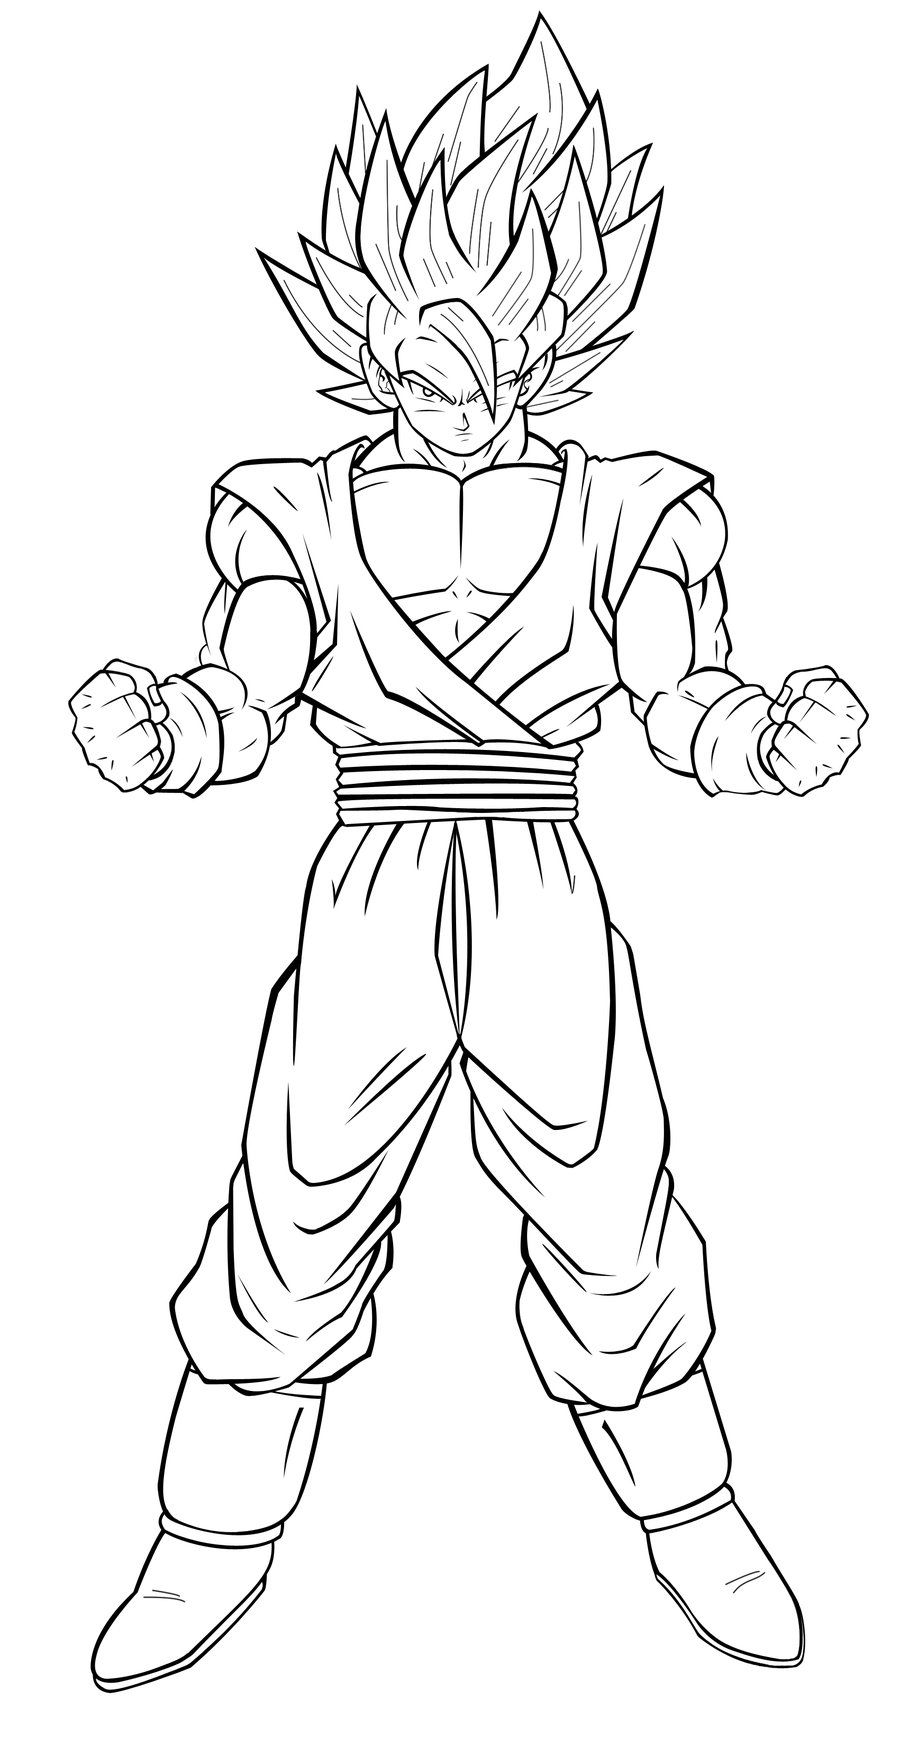 Goku Super Saiyan 4 Coloring Pages images | Isaiah Birthday ...